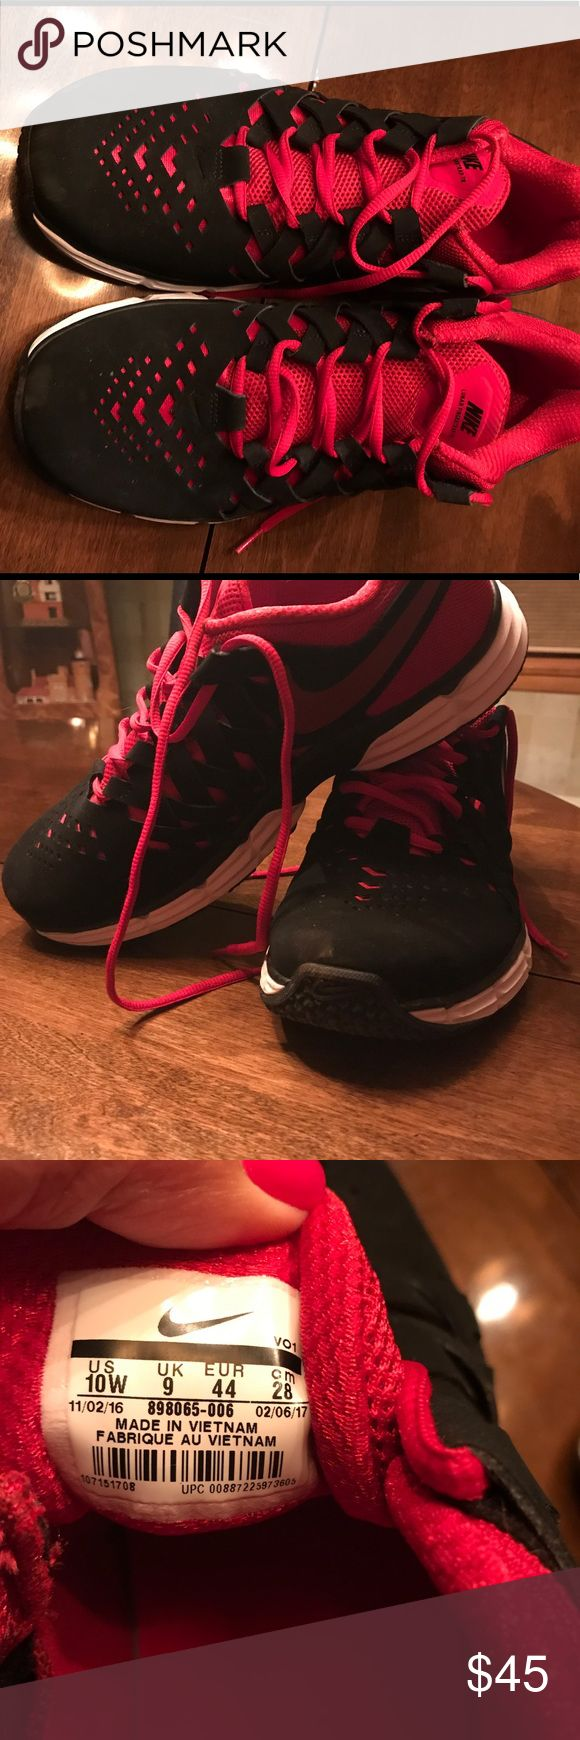 Men's Nike size 10 wide.  Red &black. Men's Nike shoes size 10 wide Red and black....Excellent condition! Nike Shoes Sneakers